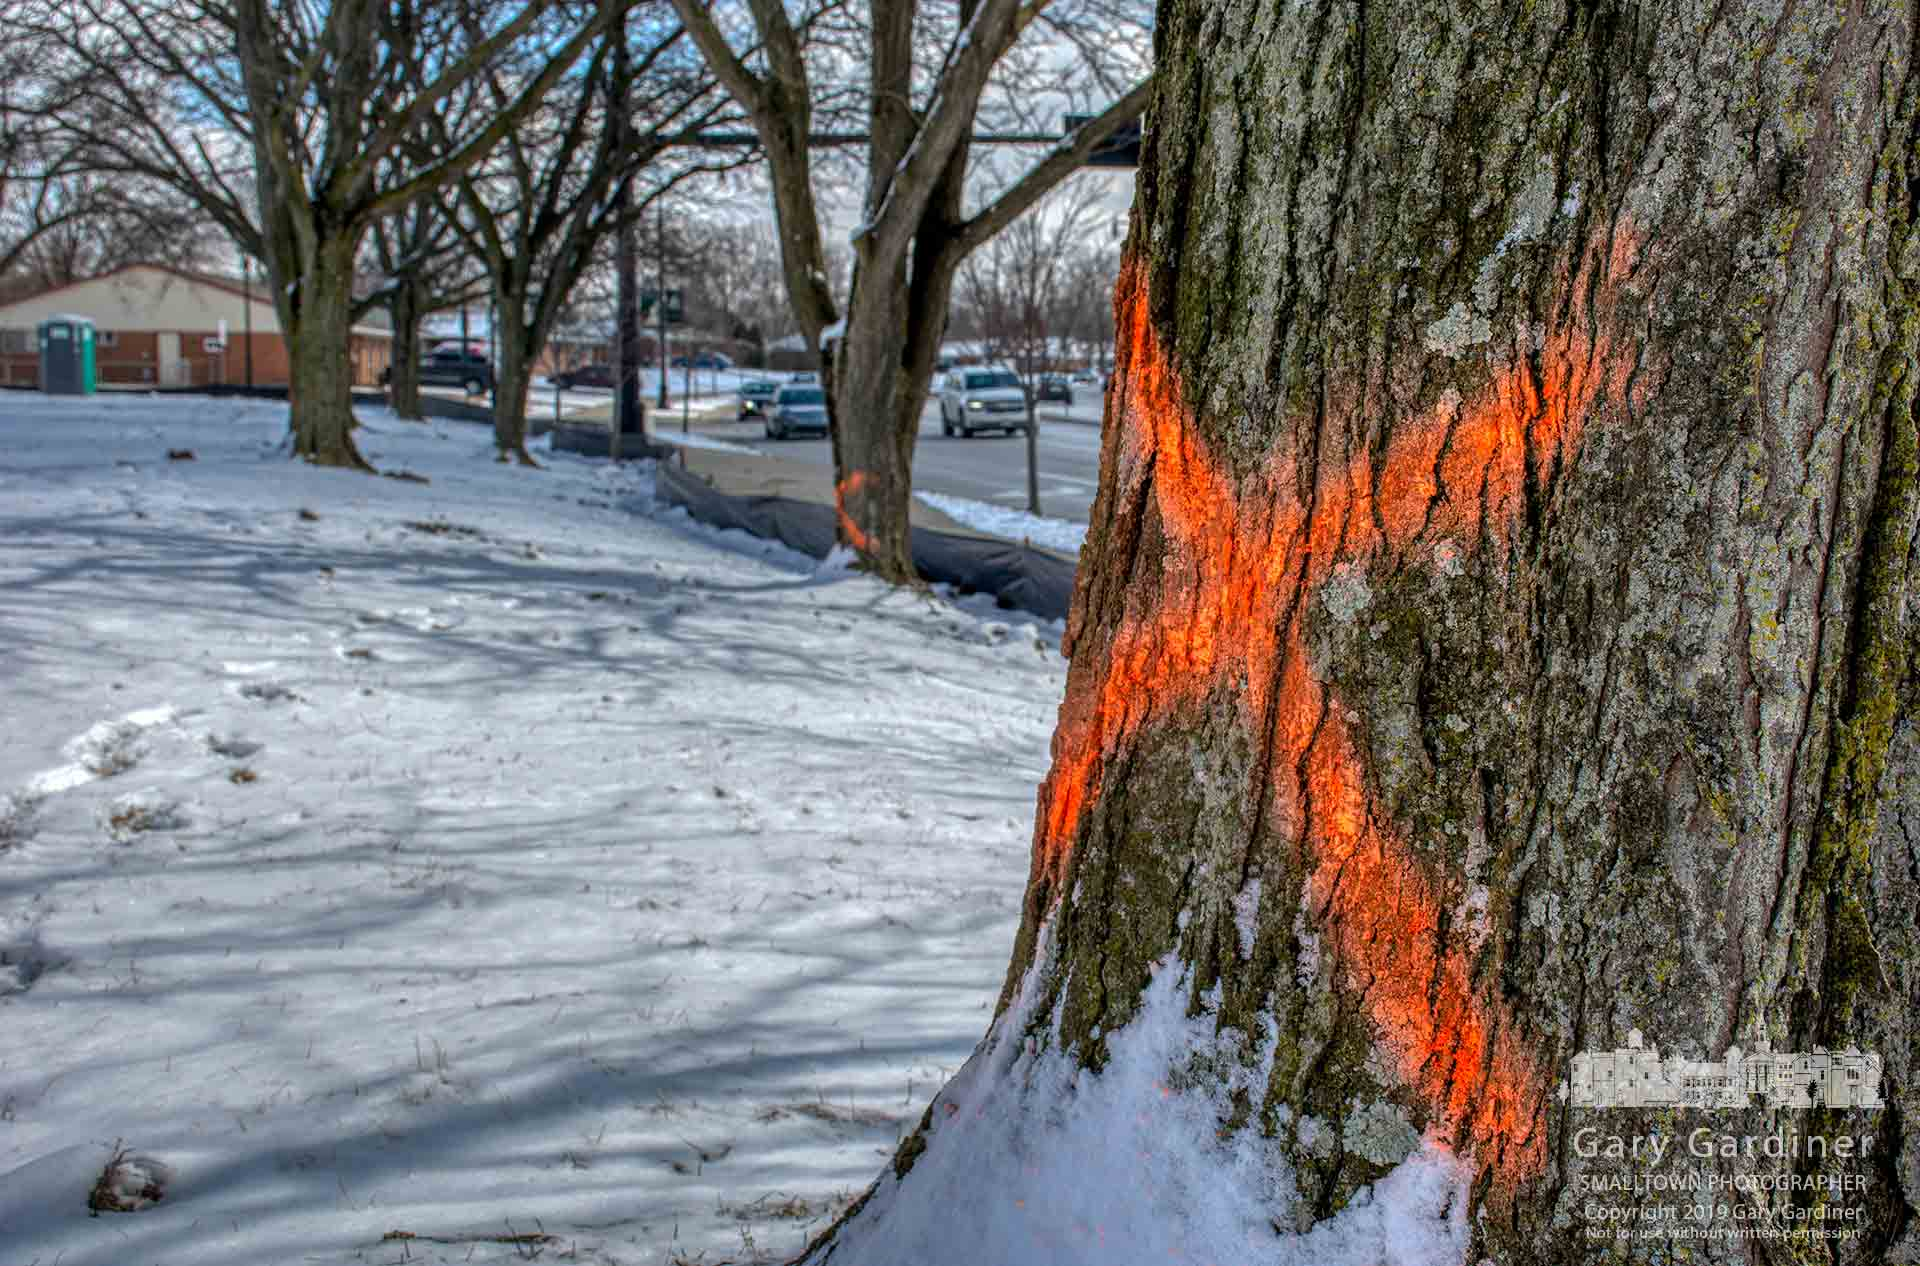 A spray-painted X marks one of five honey locust trees to be cut down to make way for the parking lot of the First Watch restaurant being built at State and Huber Village Blvd. My Final Photo for March 4, 2019.